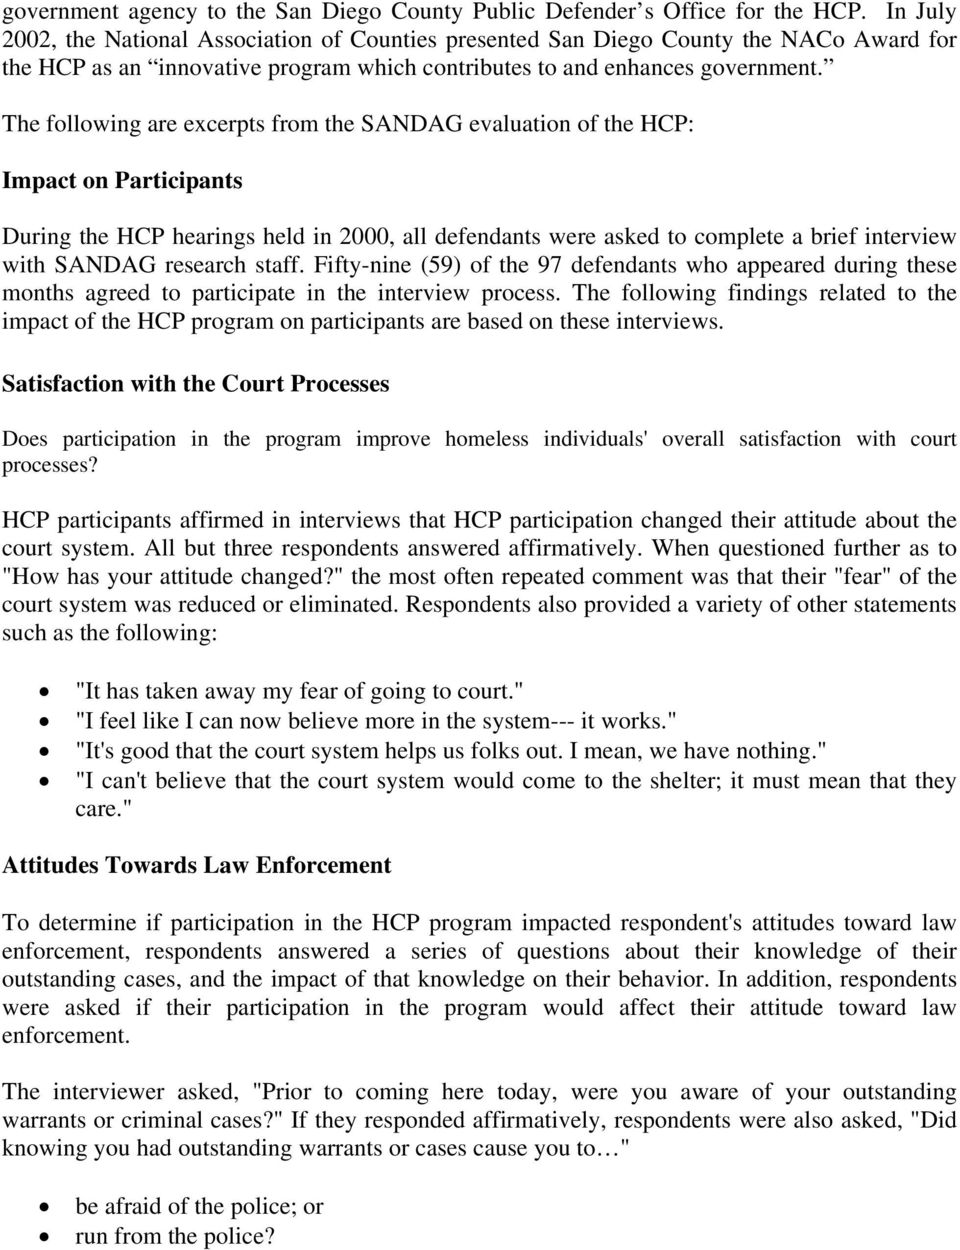 The following are excerpts from the SANDAG evaluation of the HCP: Impact on Participants During the HCP hearings held in 2000, all defendants were asked to complete a brief interview with SANDAG